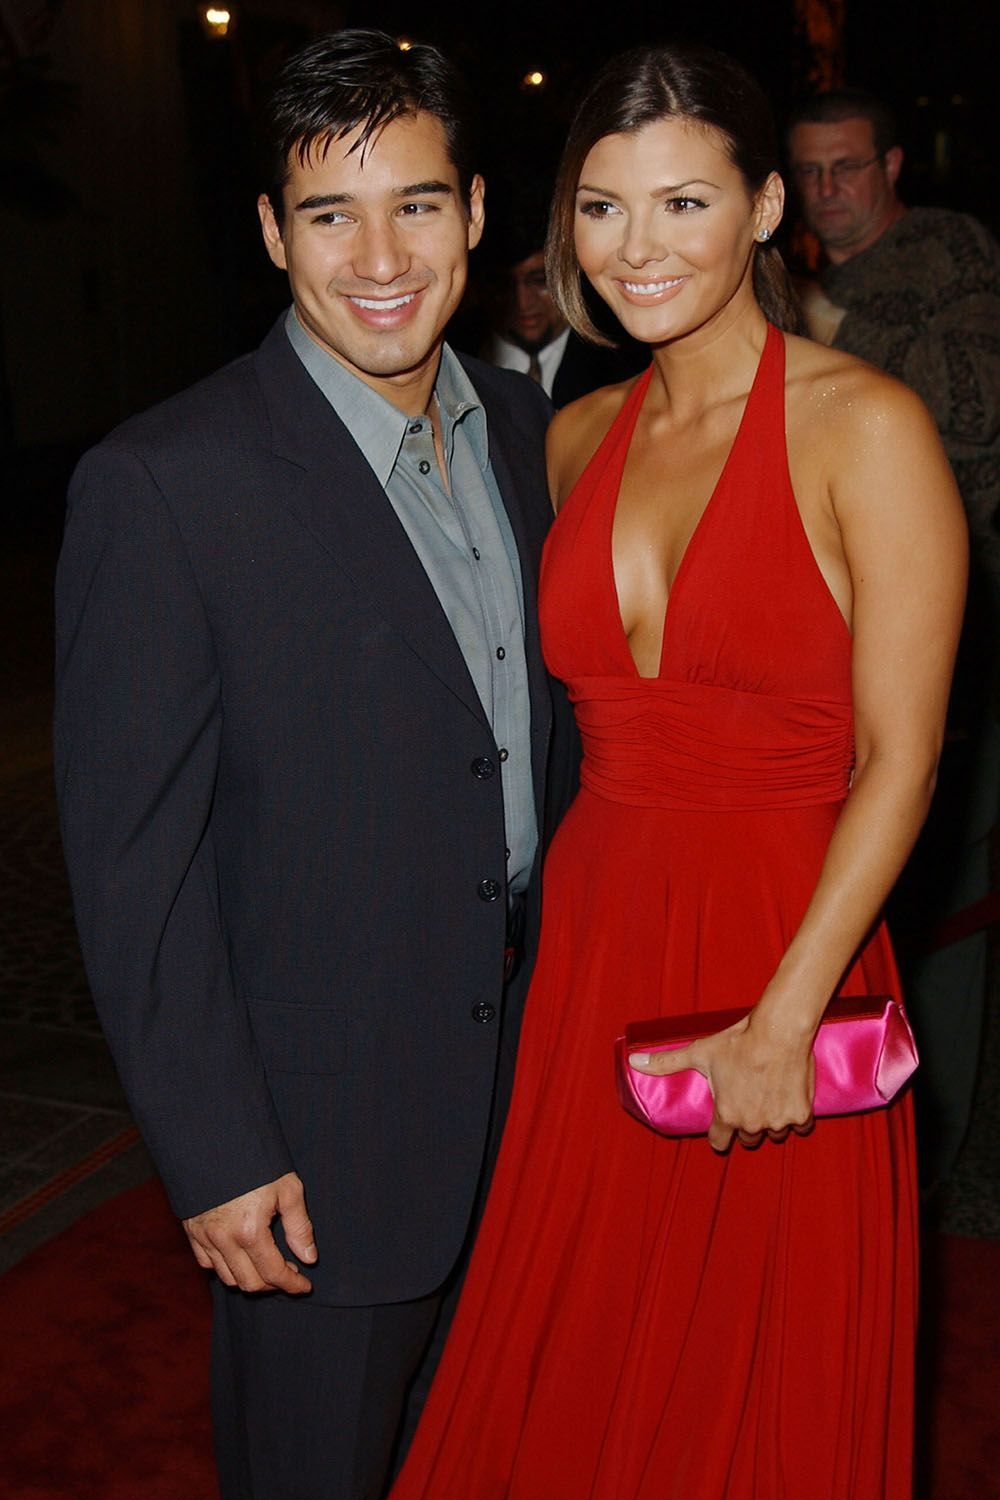 Mario Lopez and Ali Landry's Annulment